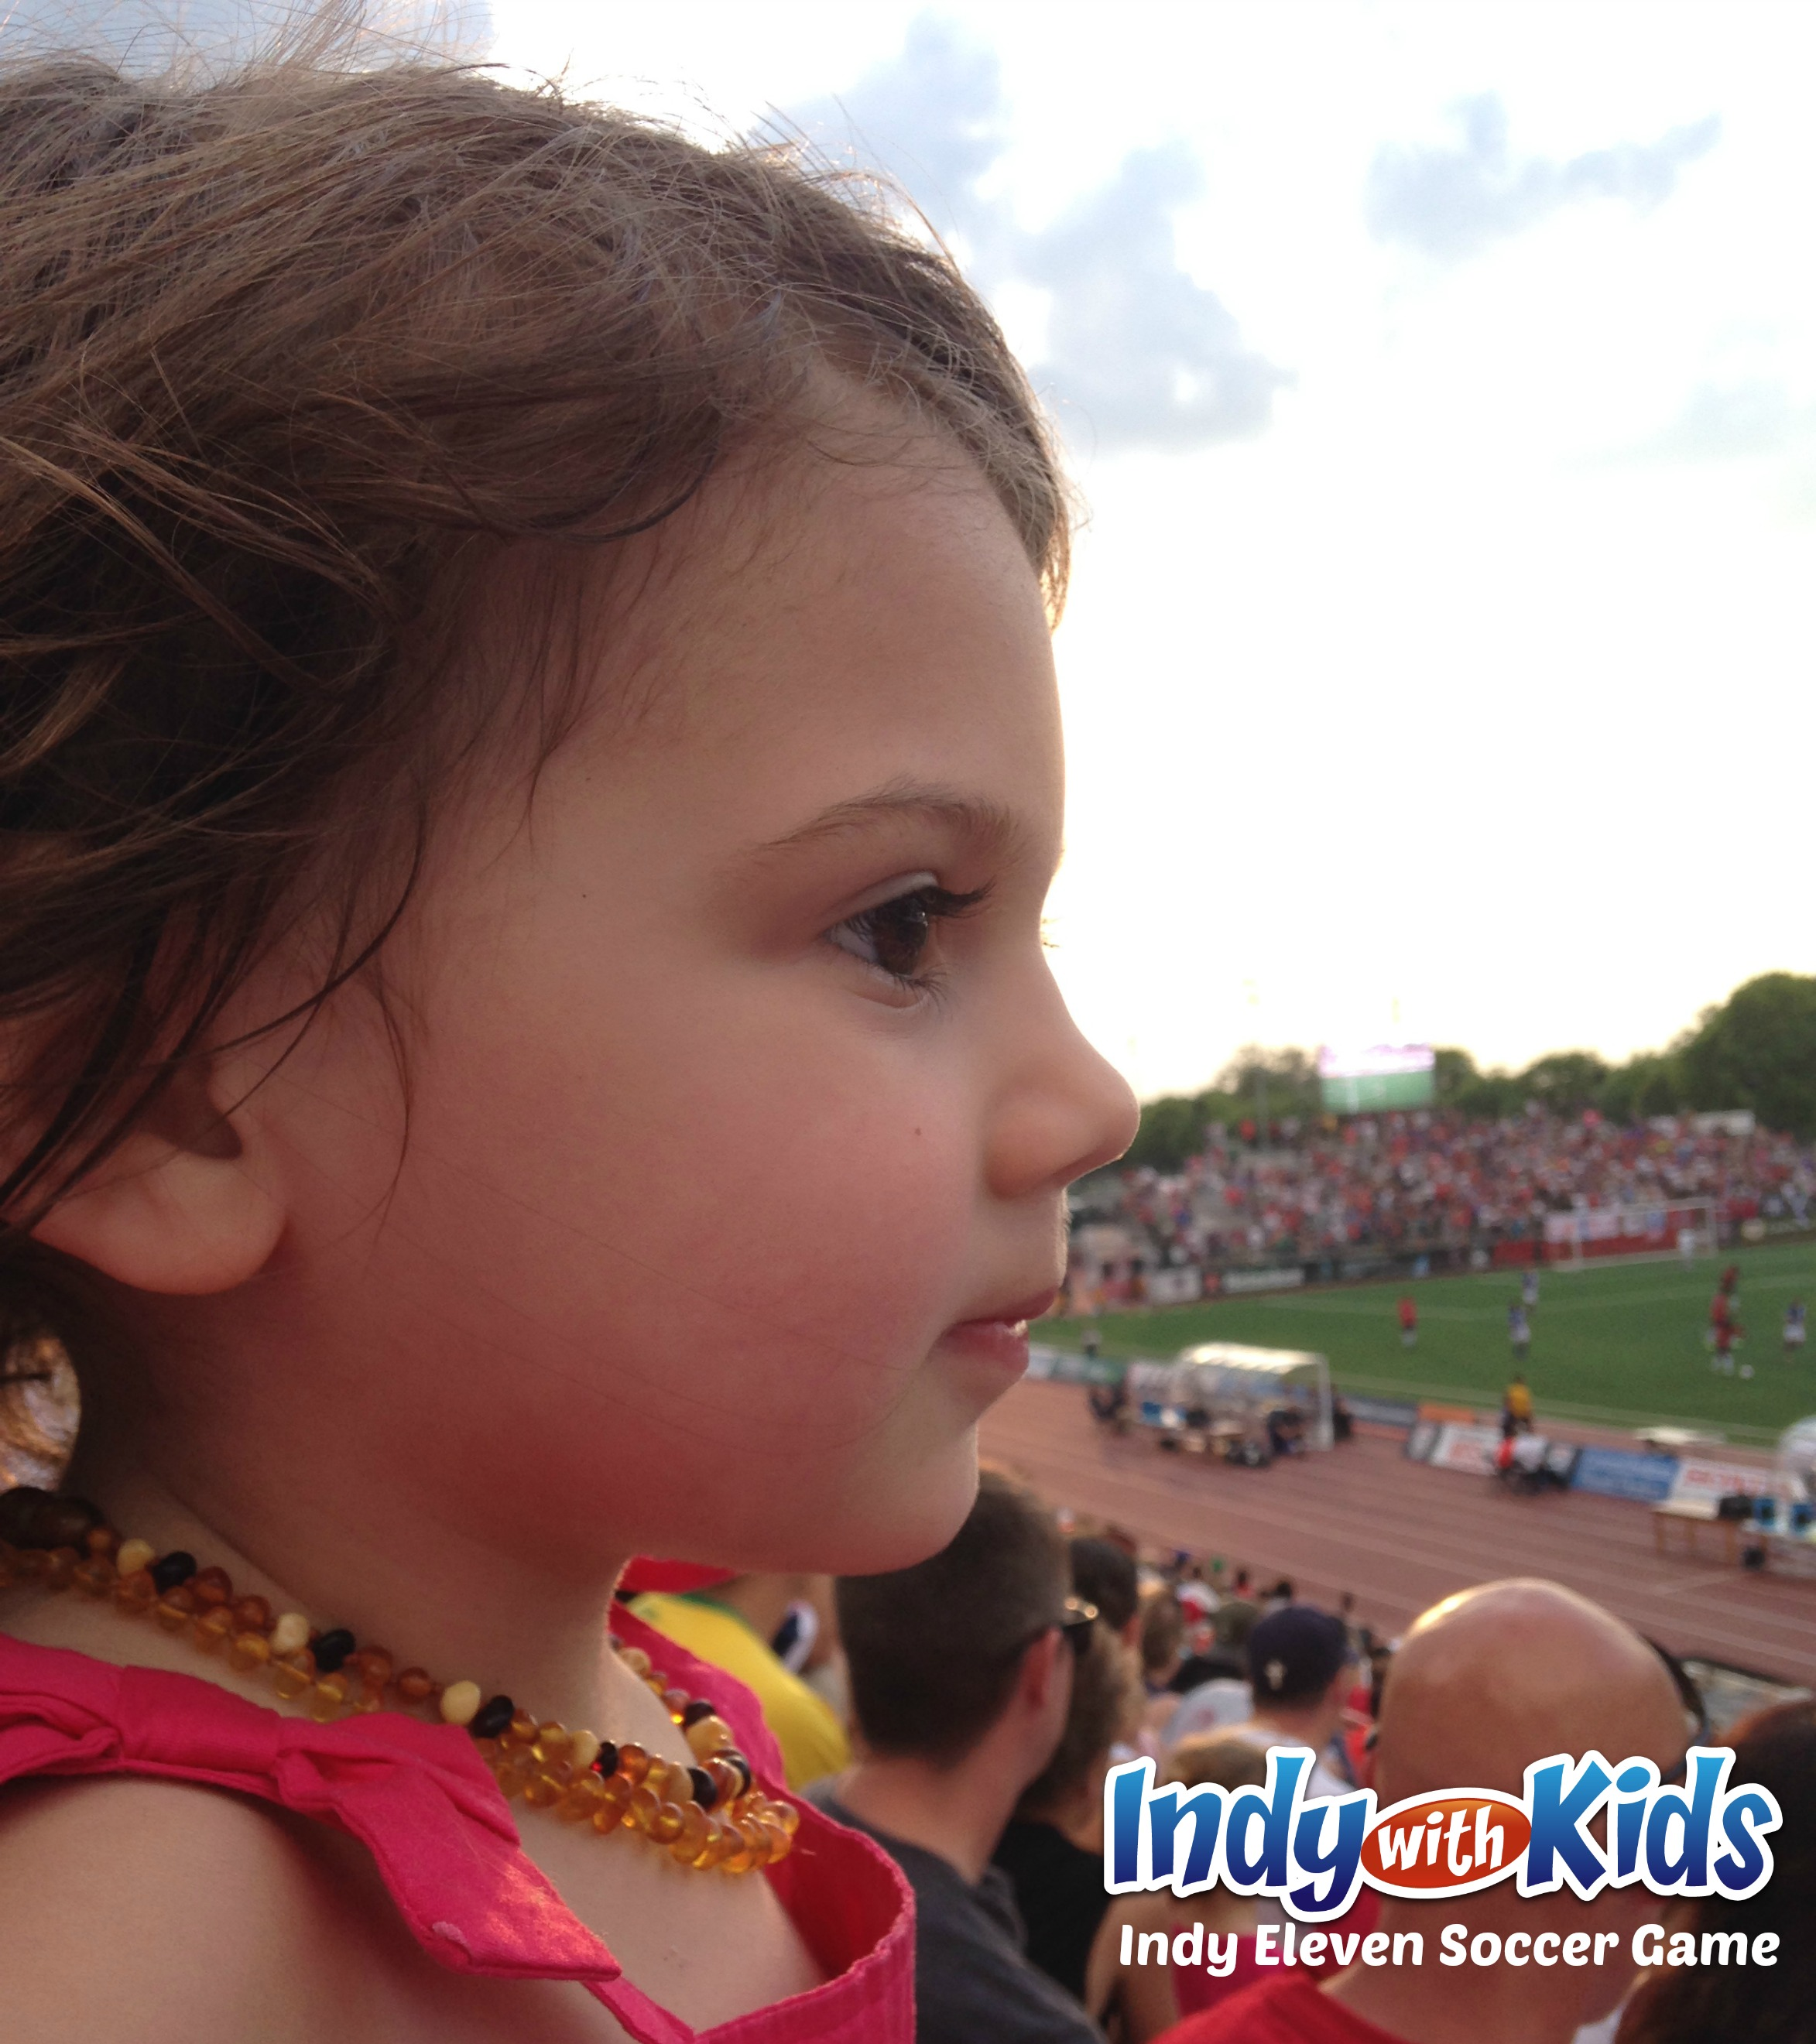 Indy Eleven Soccer Games with Kids